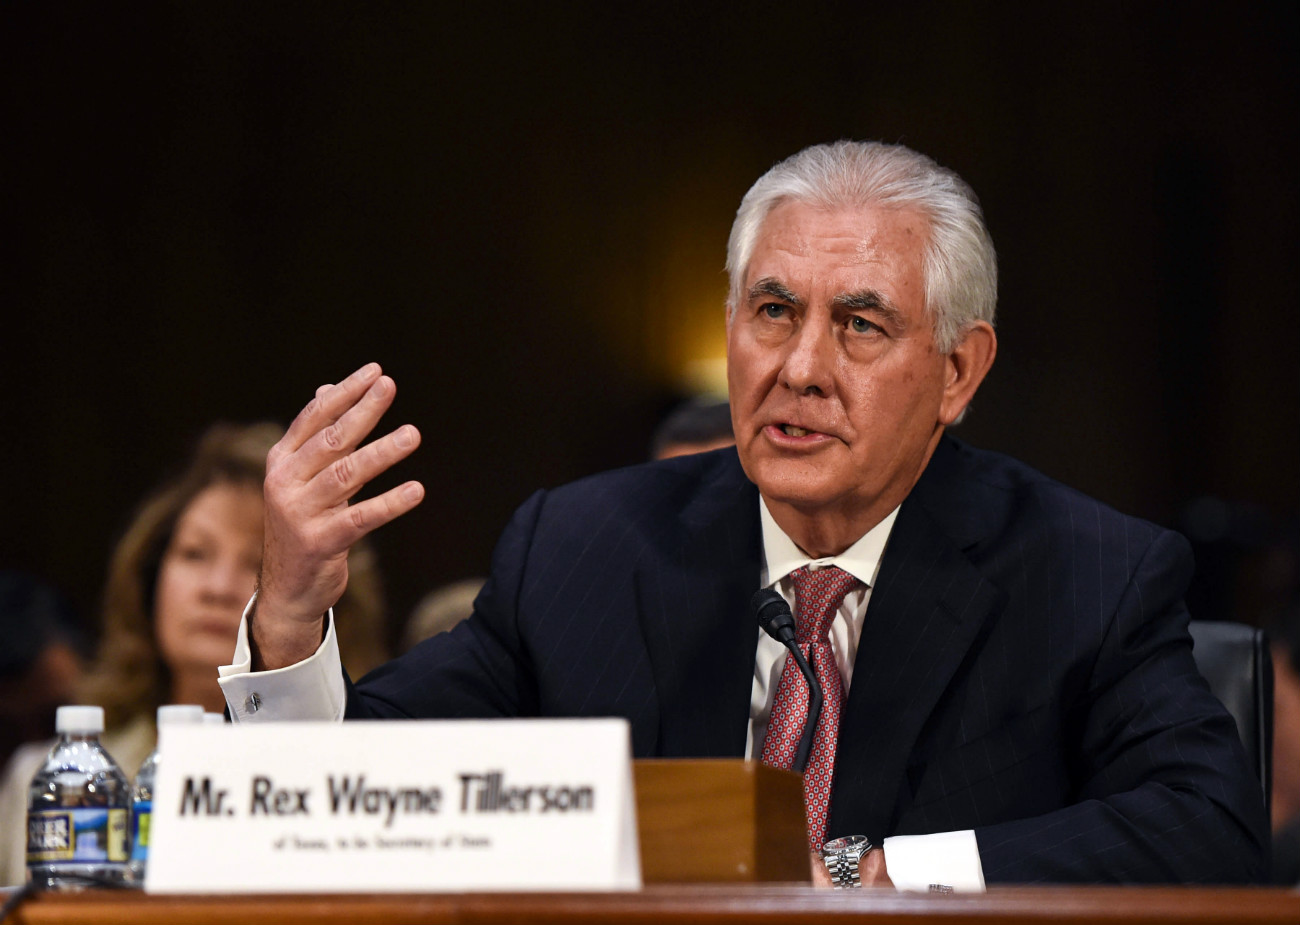 Rex Tillerson testifies before the U.S. Senate Foreign Relations Committee during the confirmation hearing on his nomination to be U.S. secretary of state at Capitol Hill in Washington D.C., the United States, on Jan. 11, 2017. U.S.